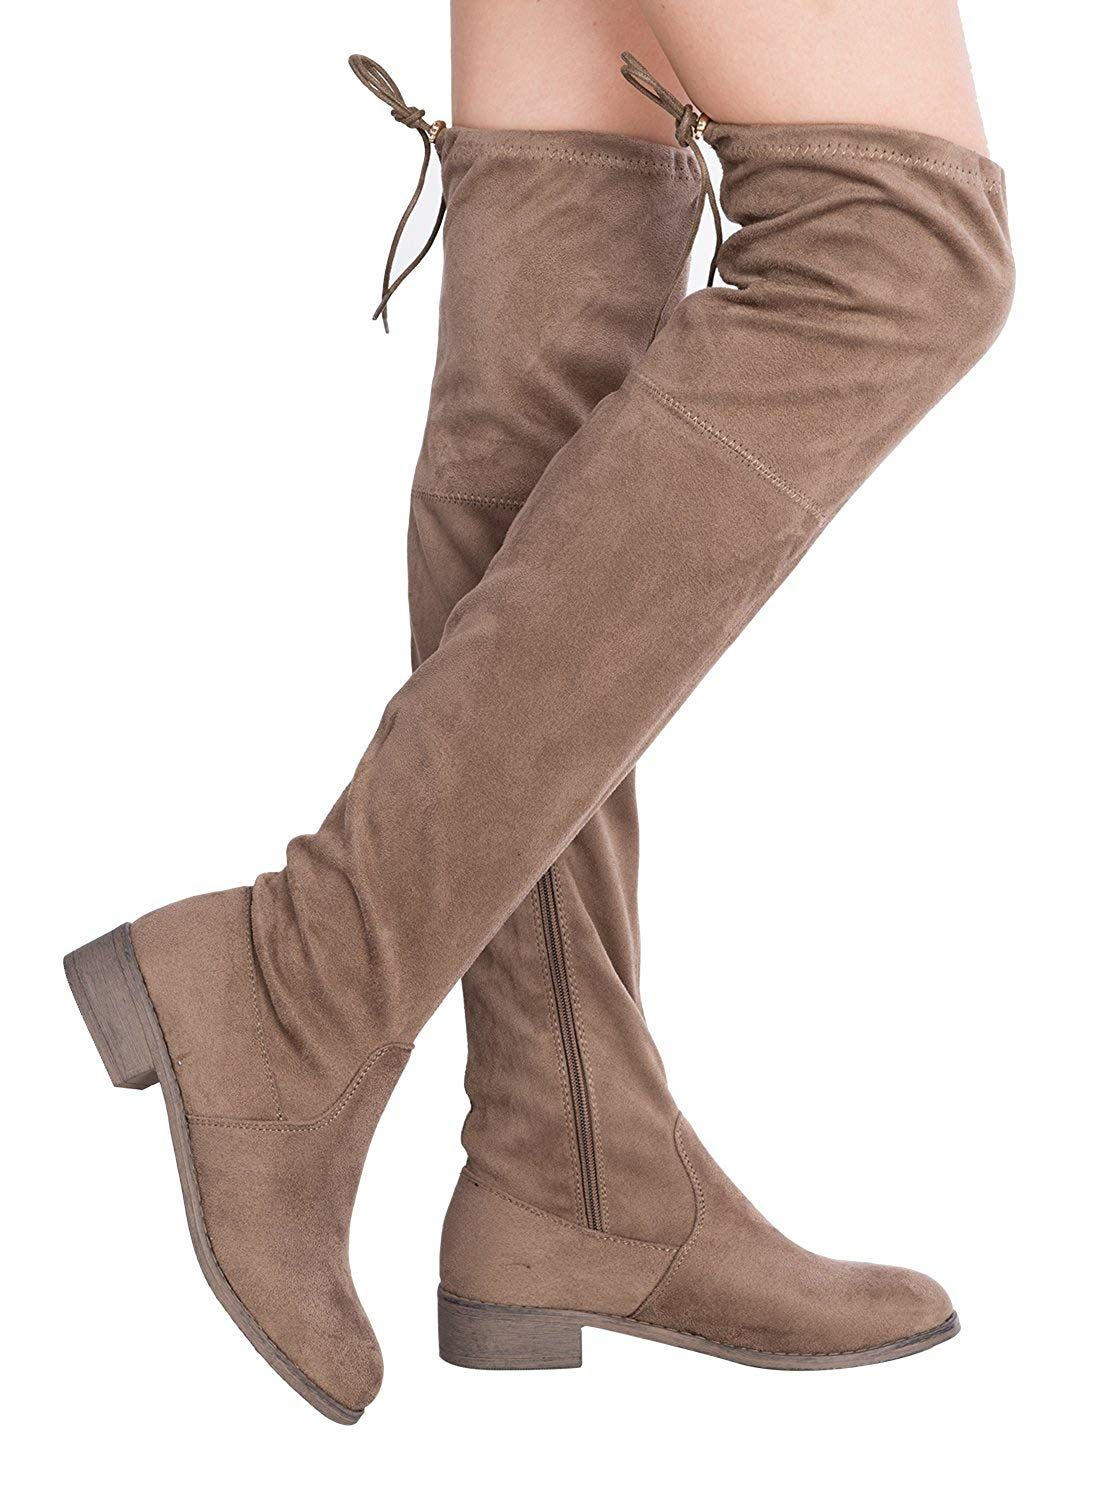 c6ccef7441fd OLIVIA K Women s Sexy Over The Knee Thigh High Faux Suede and Leather Low  Heel Boots -- Learn more by visiting the image link. (This is an affiliate  link)